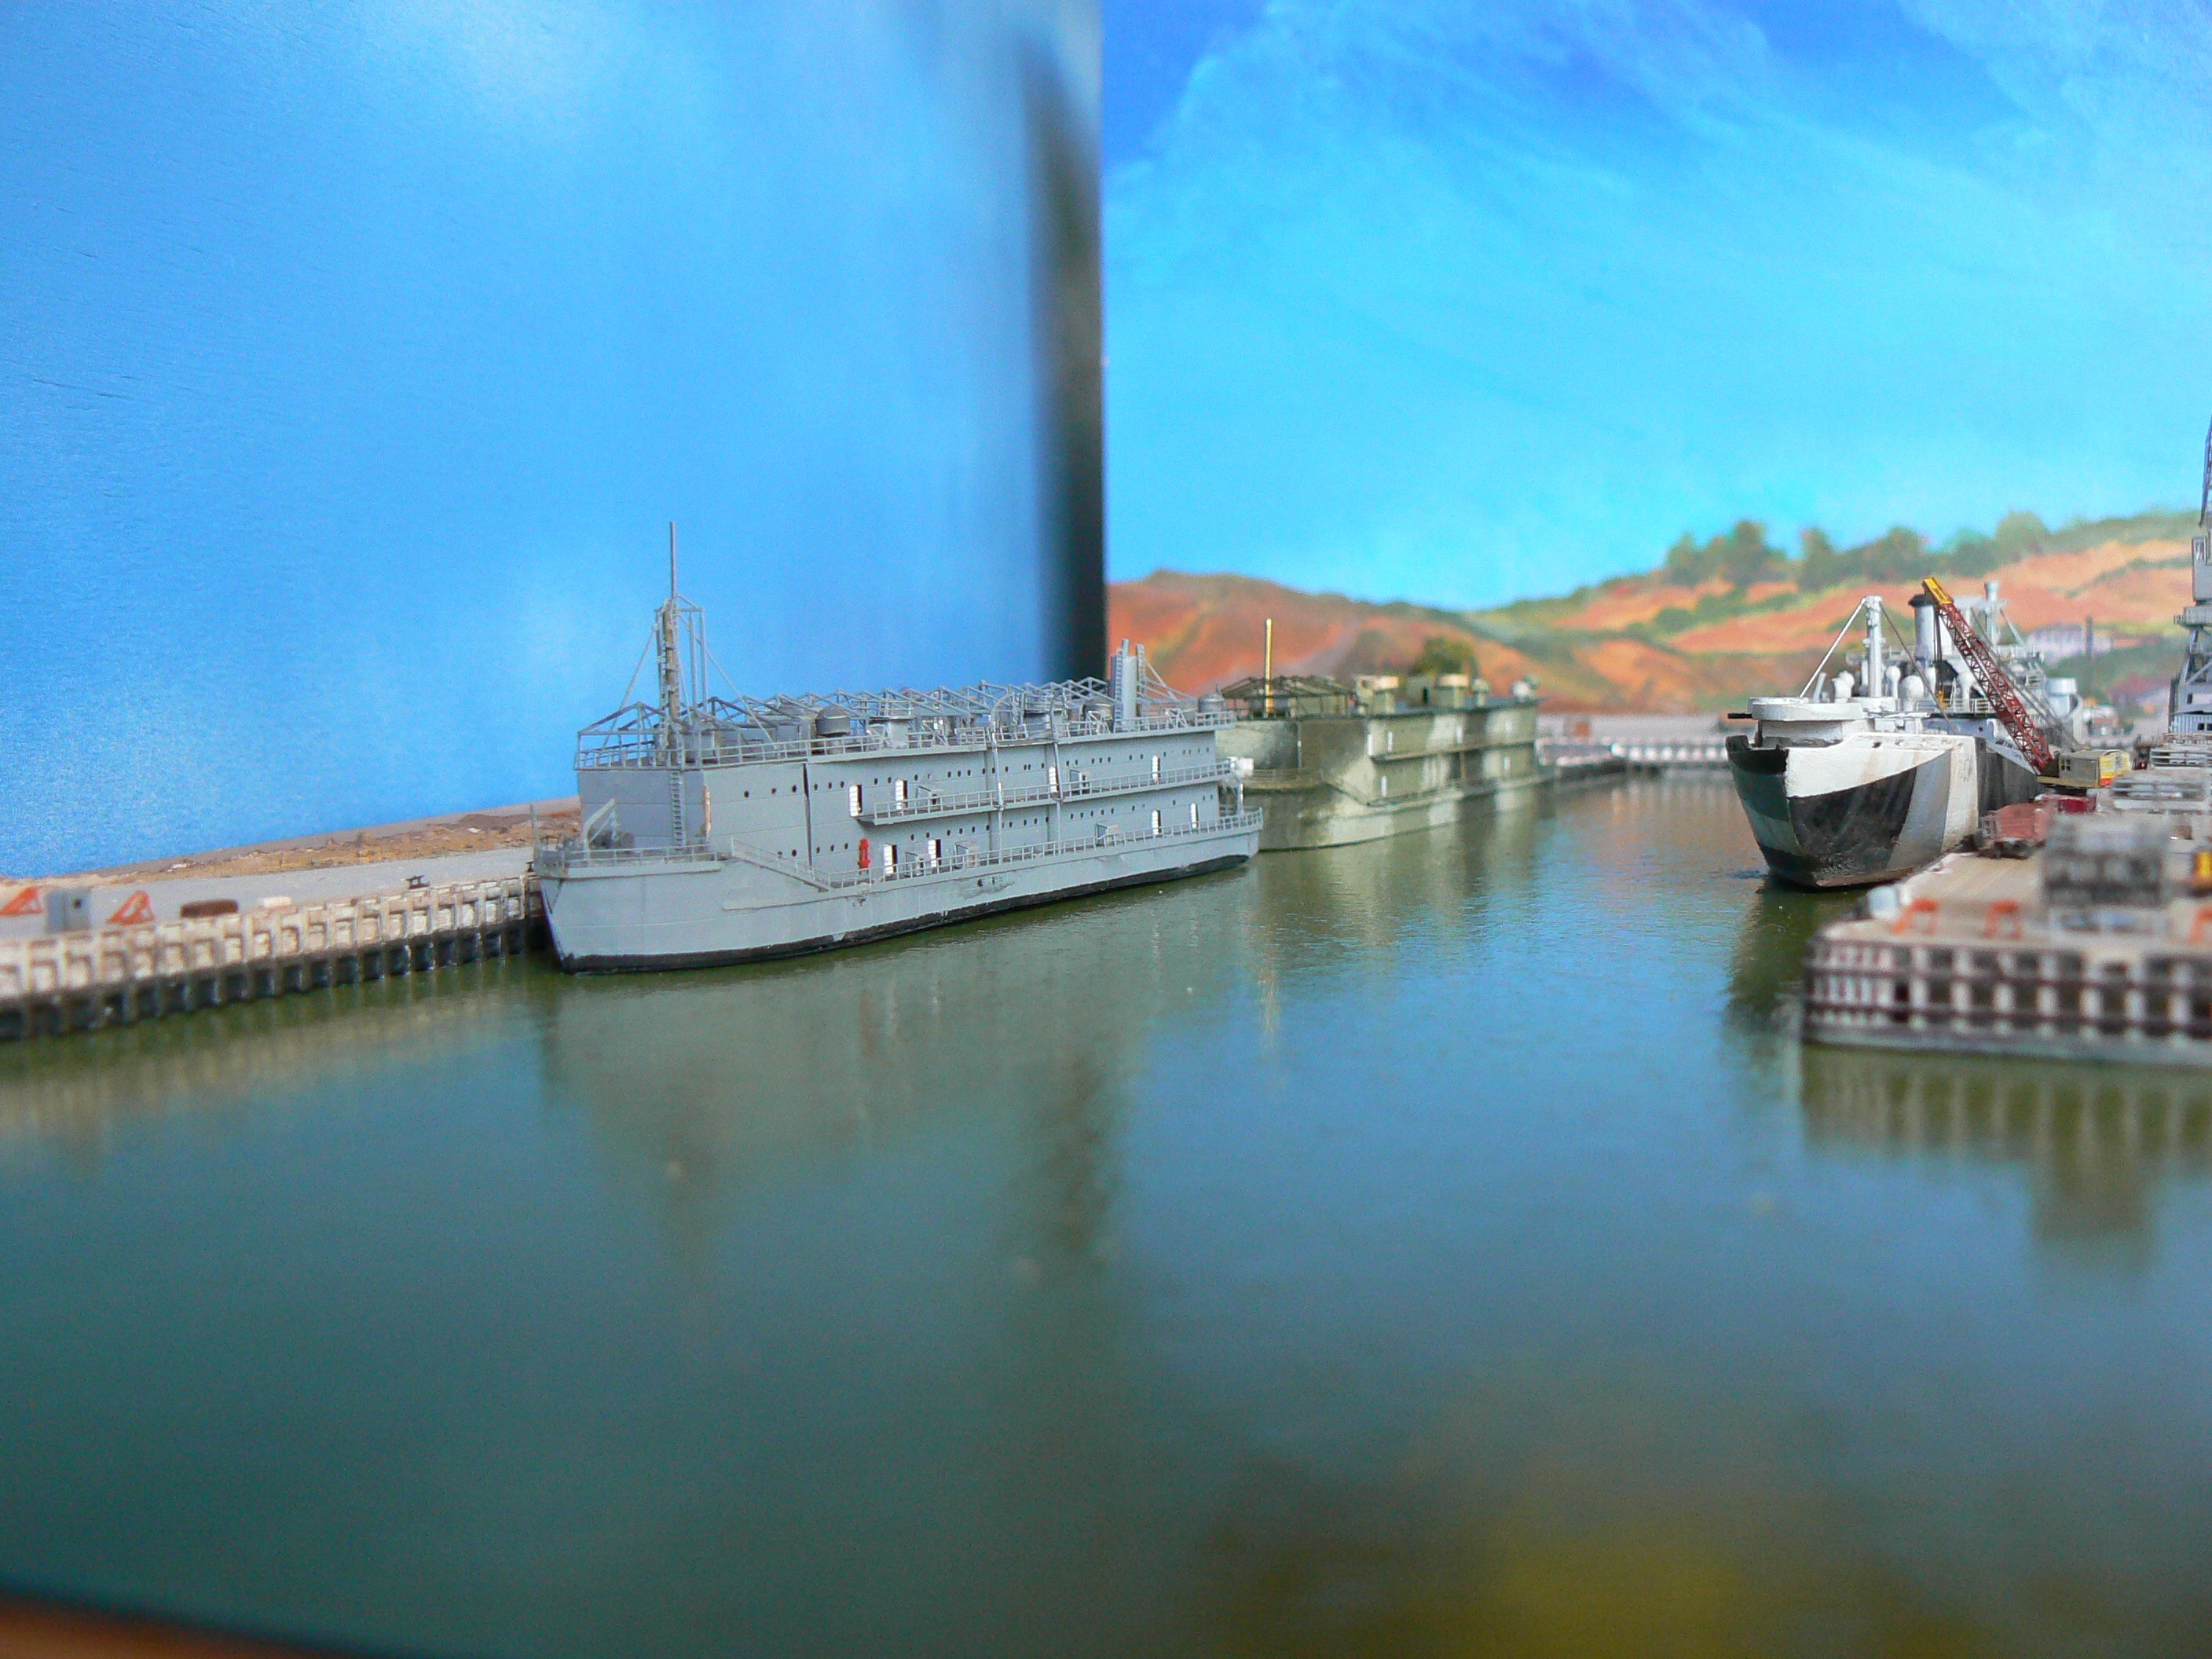 MARE ISLAND NAVAL SHIP YARD  1/700 - Page 3 WrZtnl